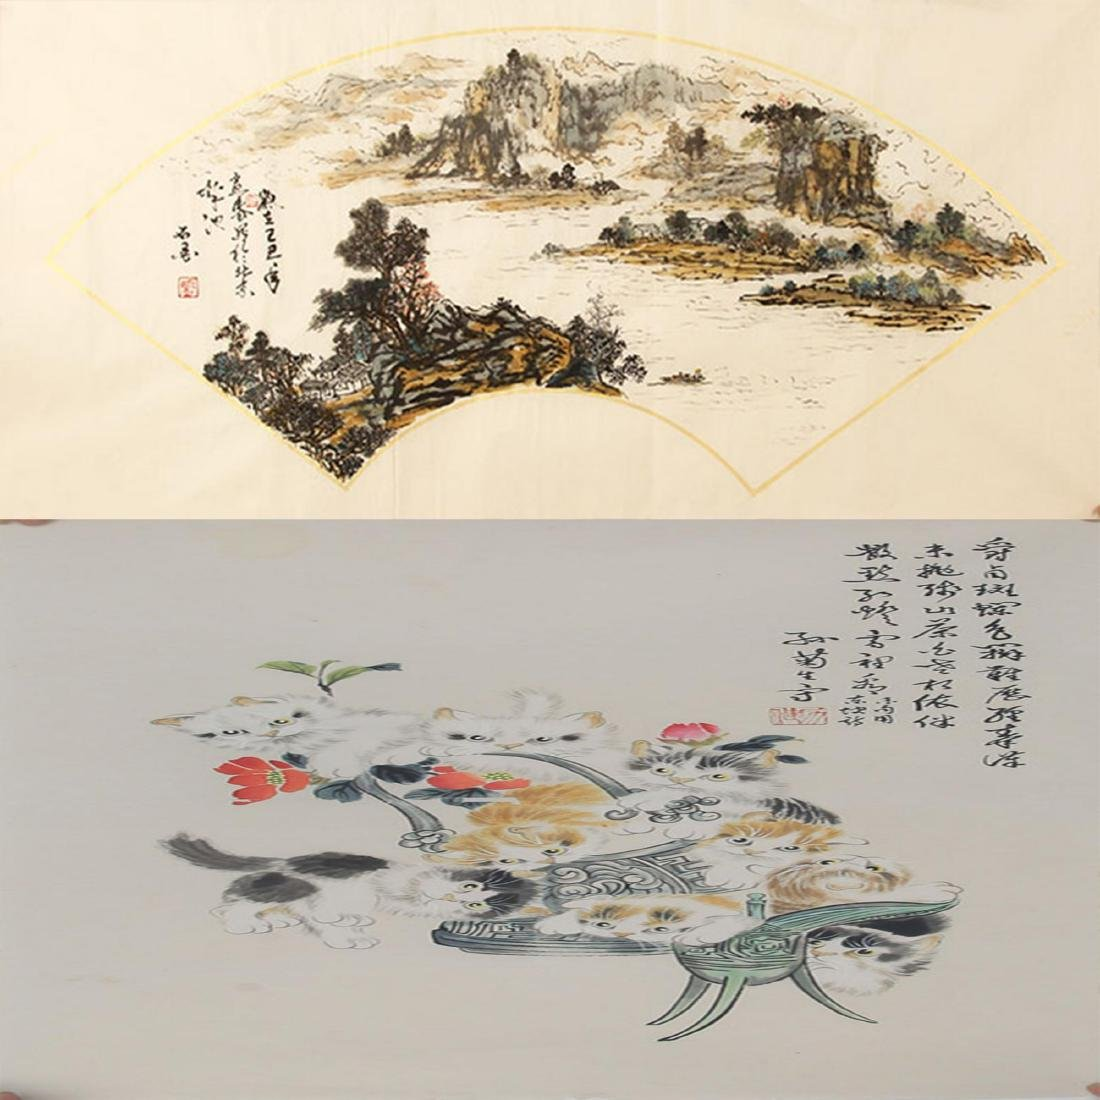 FINE CHINESE PAINTING ATTRIBUTED TO SUN JU SHENG, SHI